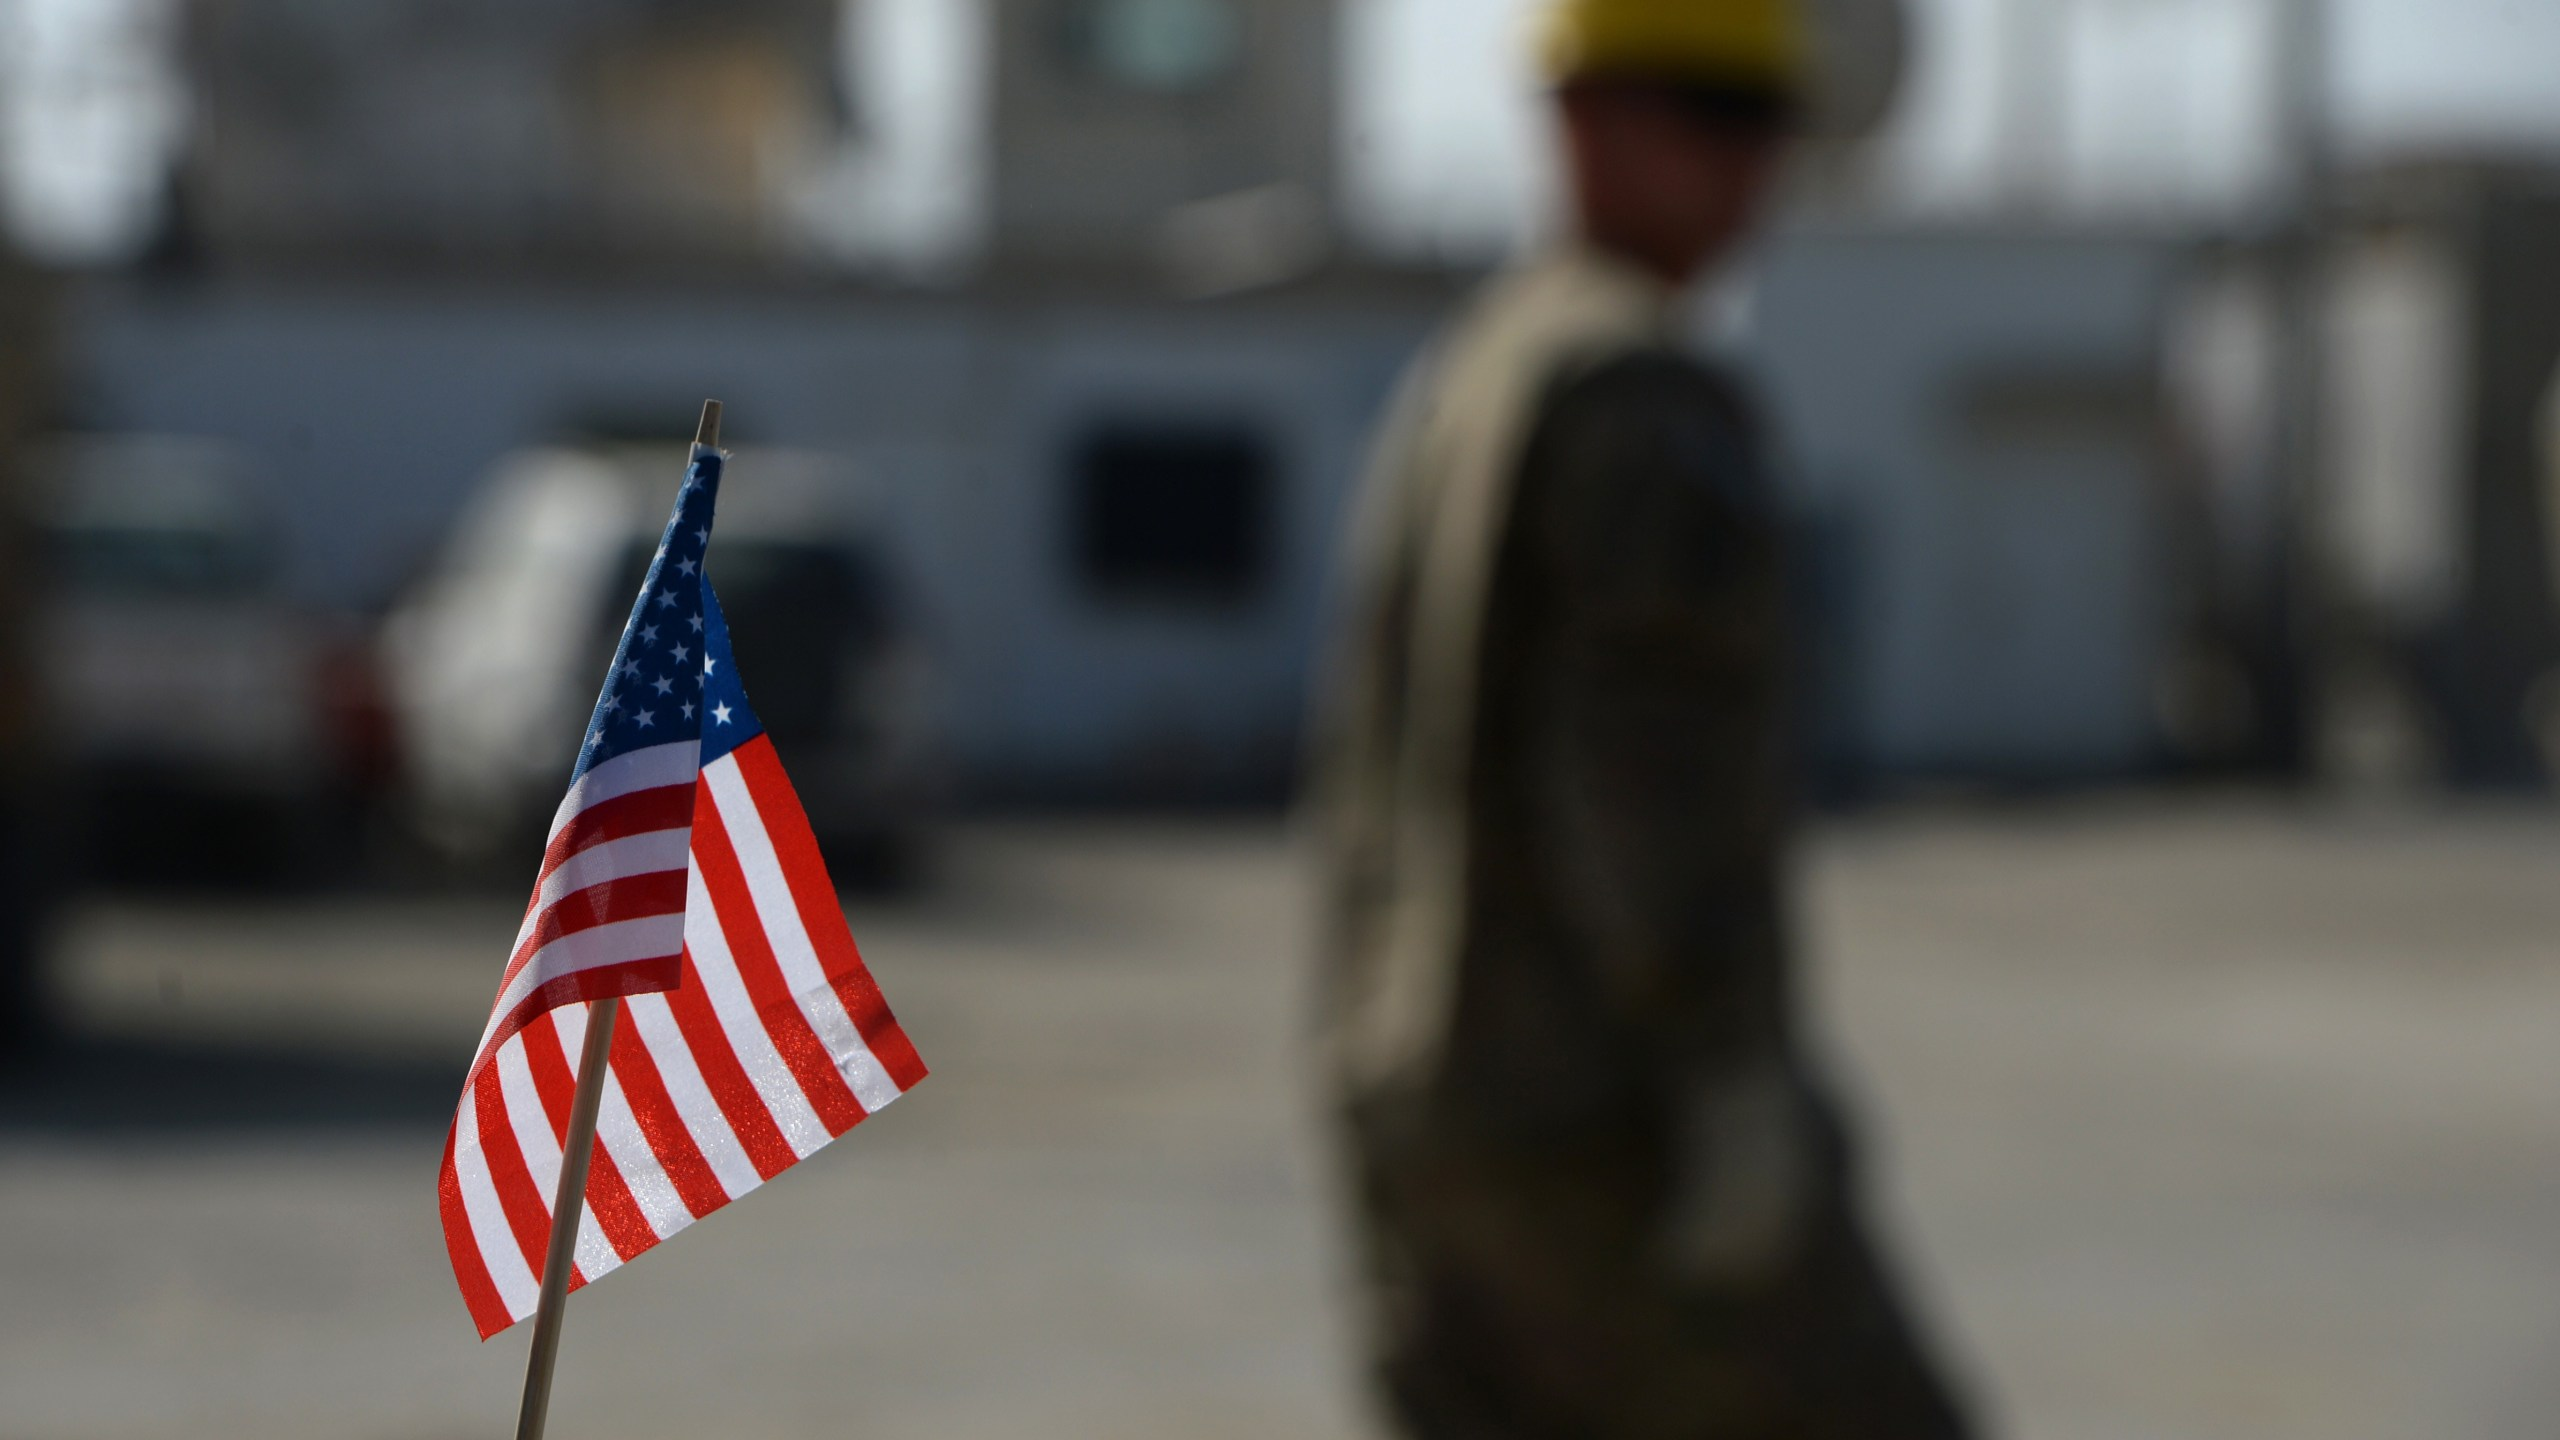 In this November 2014 photo, a U.S. flag is pictured at Bagram Air Base north of Kabul, near where U.S. forces say three U.S. soldiers and a contractor were killed. (Credit: Wakil Kohsar / AFP/Getty Images)